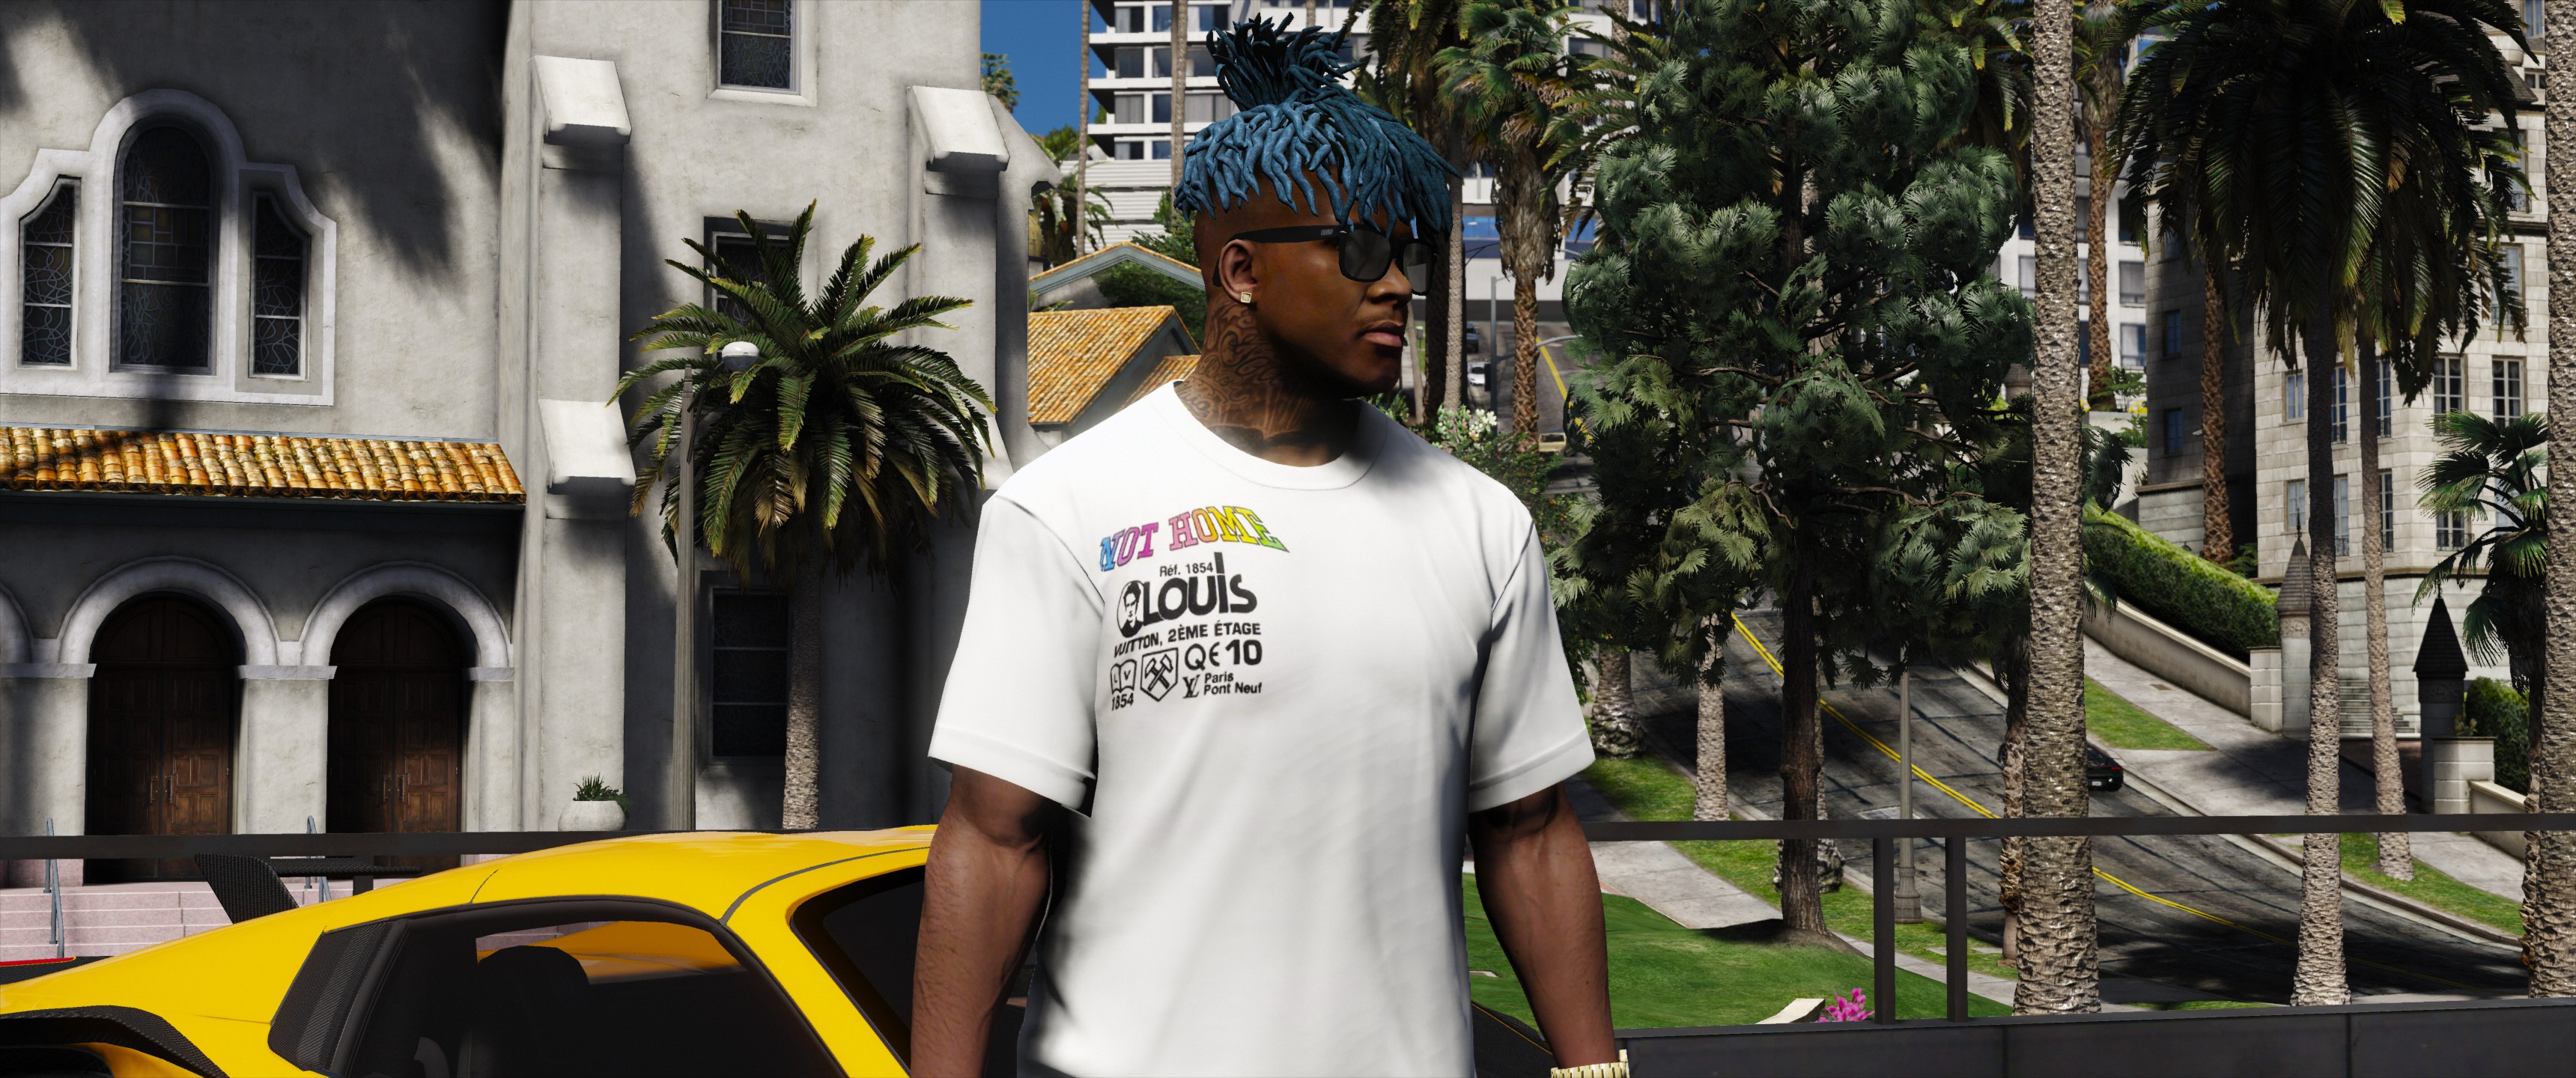 67f244f759 Louis Vuitton KANSAS WINDS t-shirt - GTA5-Mods.com